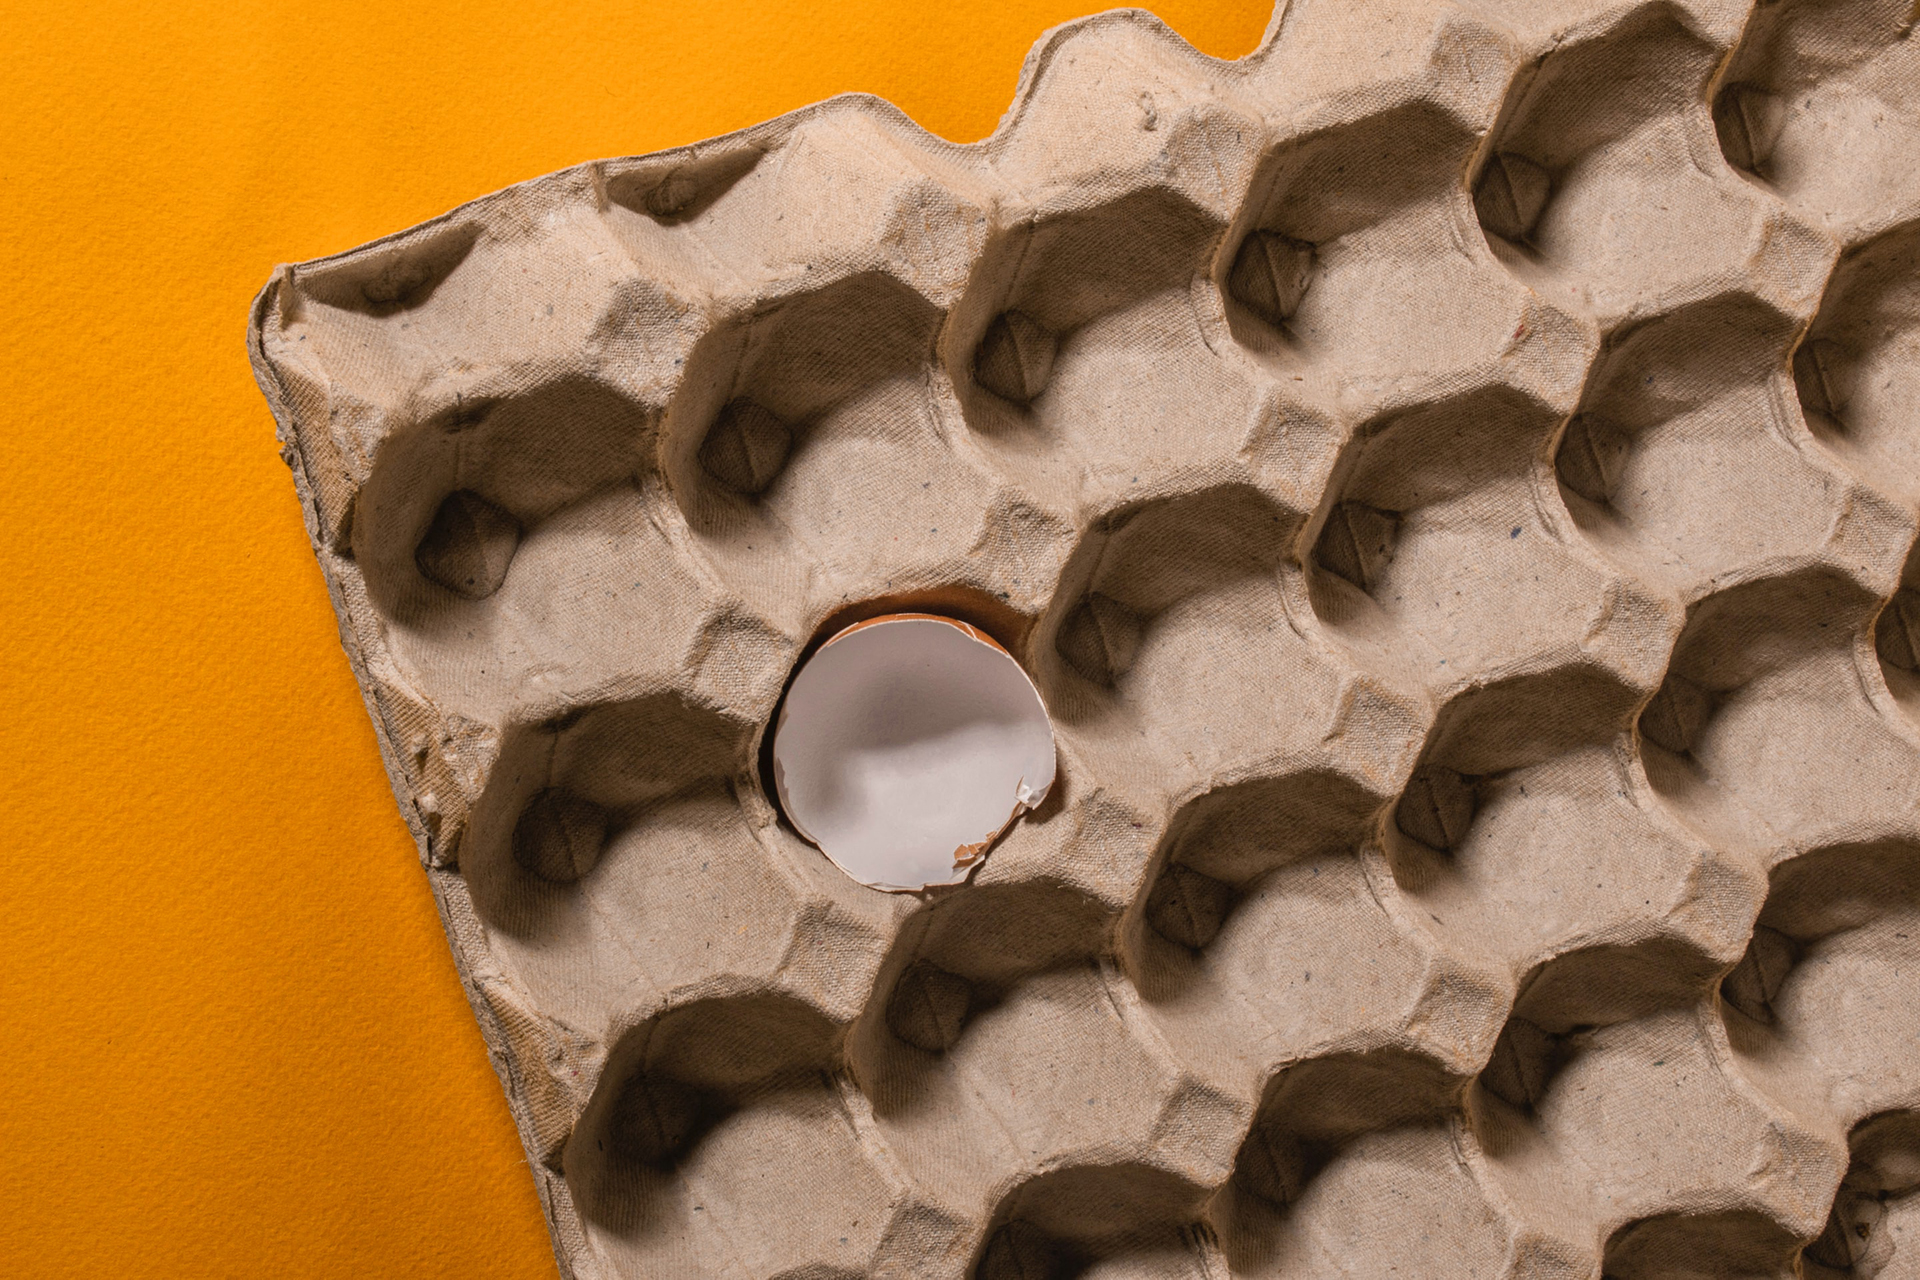 Soundproofing With Egg Cartons